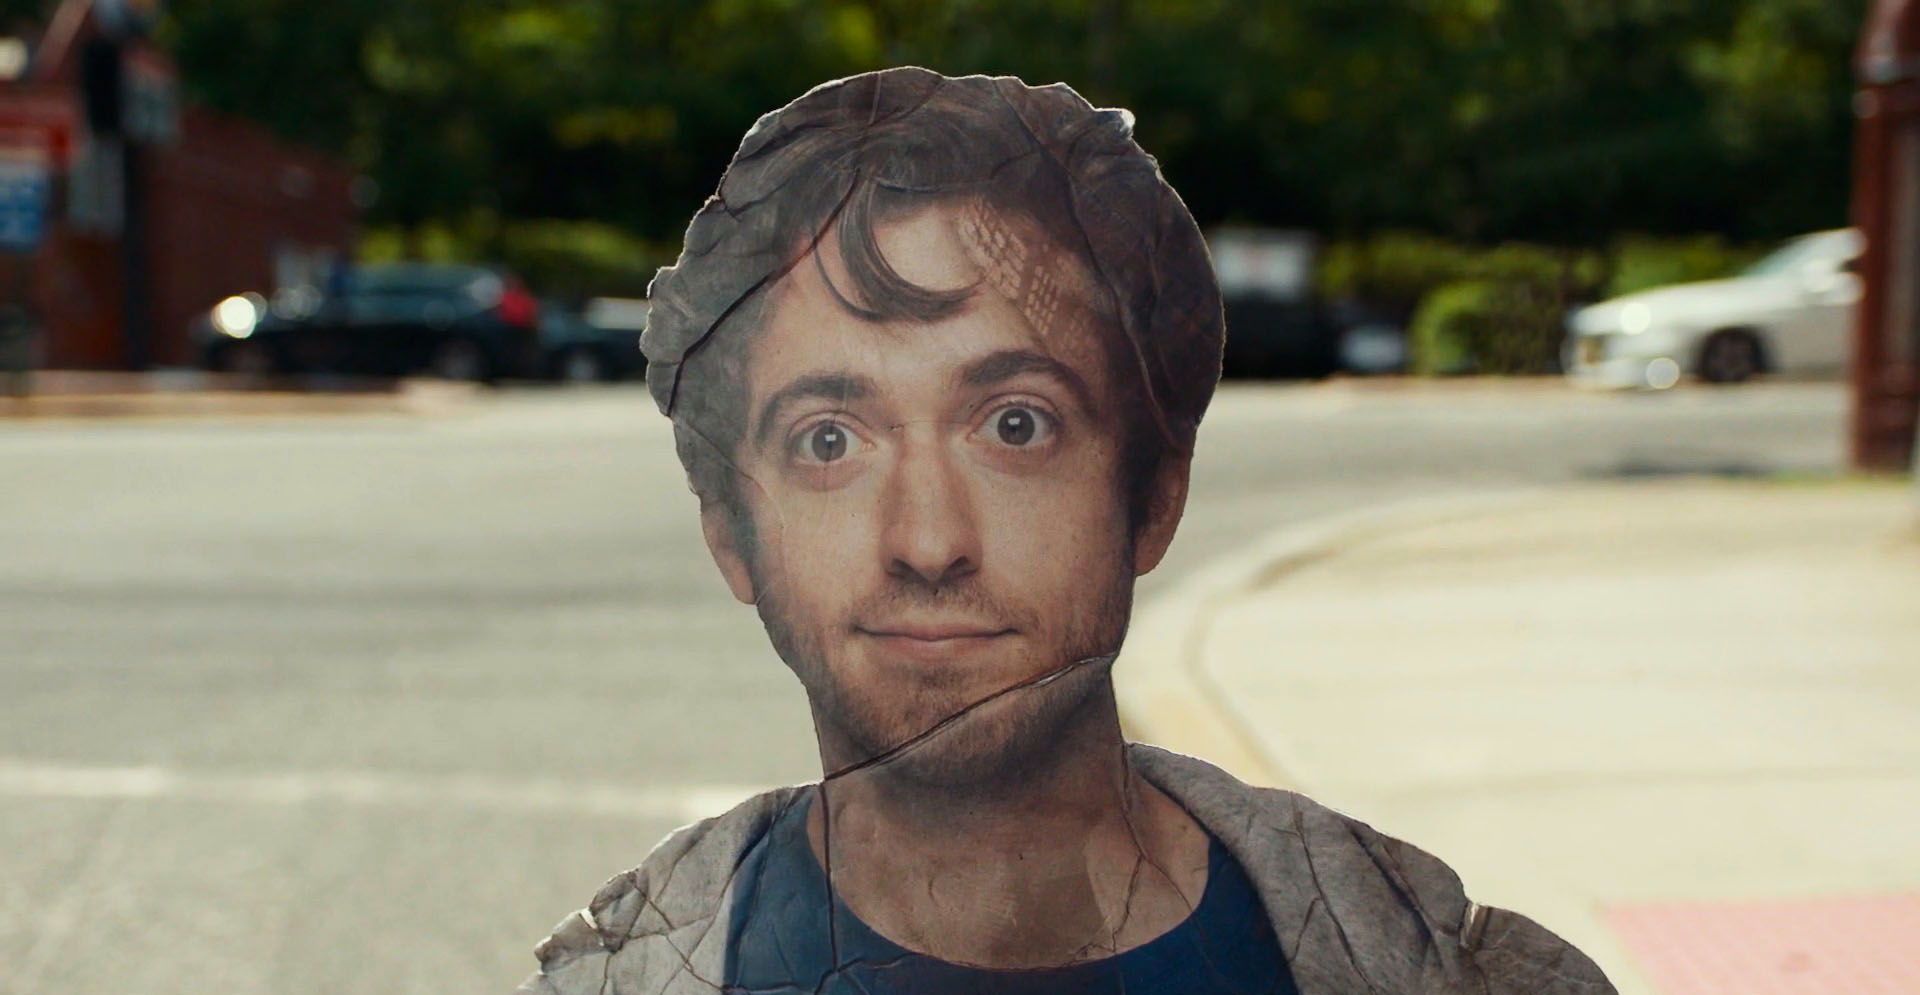 Bud Light Pays Tribute To Cardboard Fans In Epic 2 Minute Film Muse By Clio